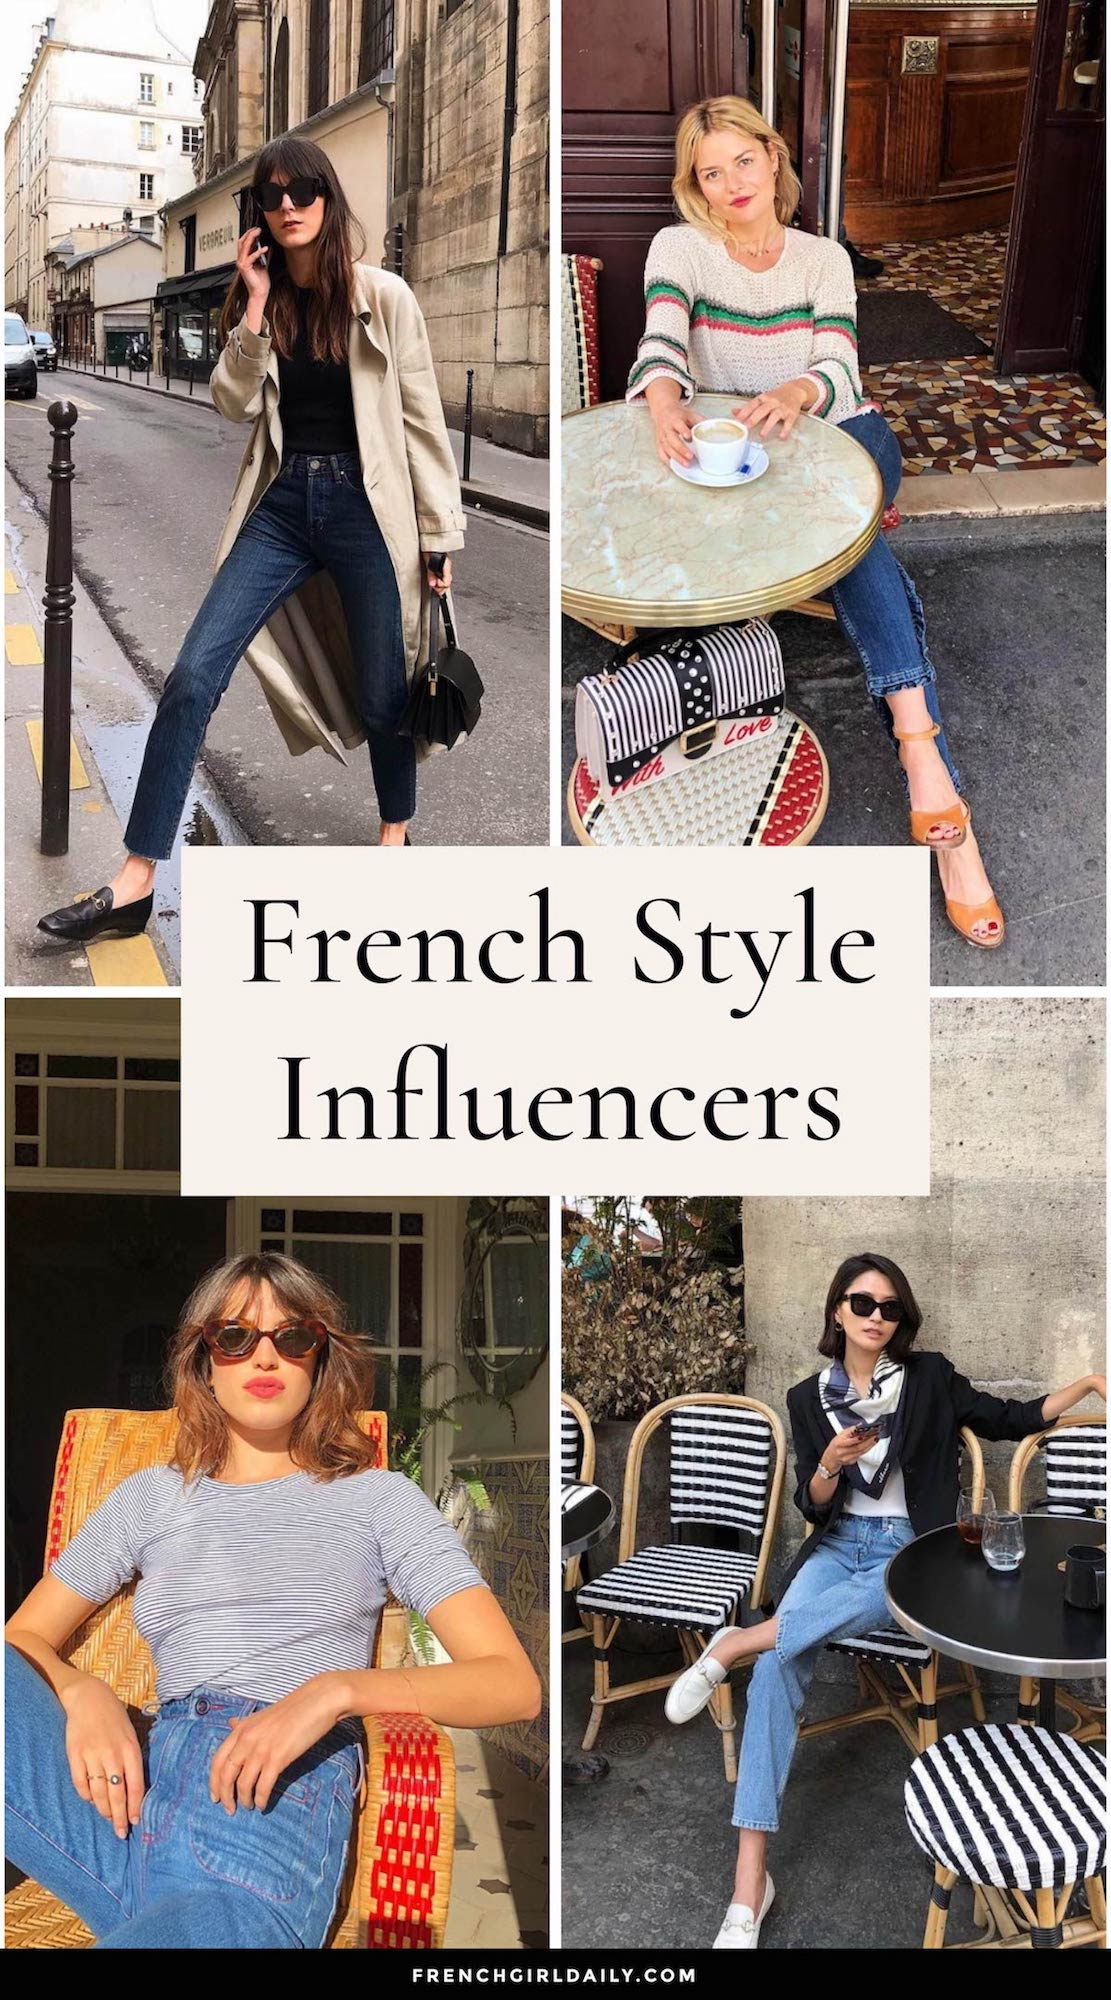 French Style Influencers